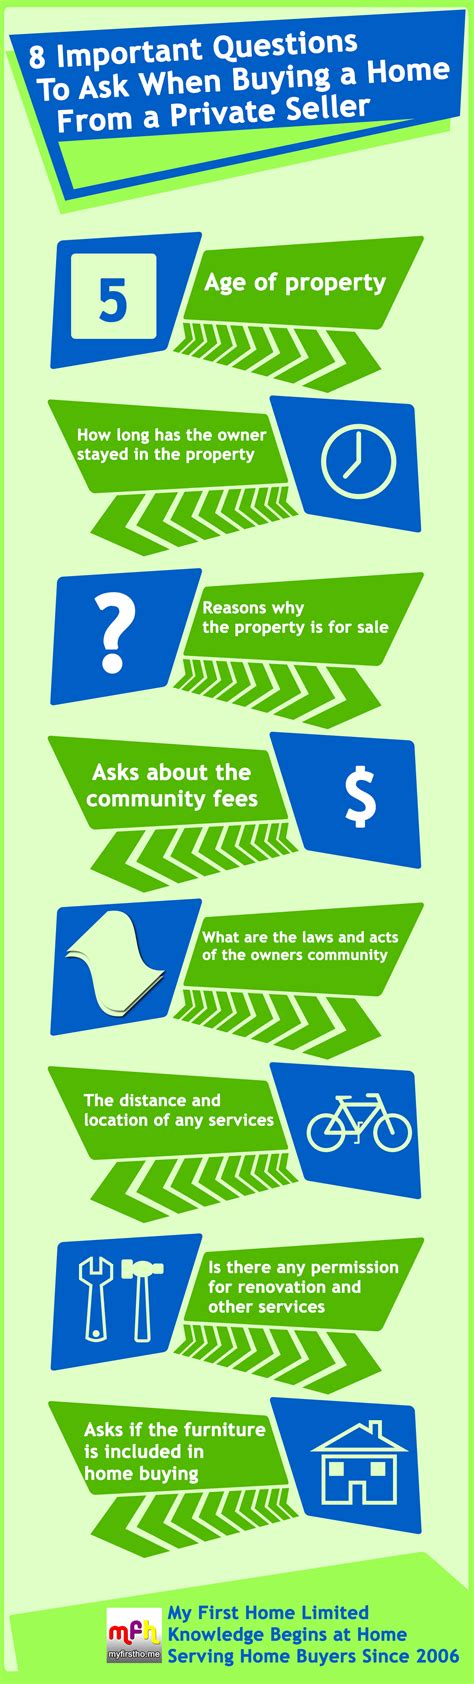 questions to ask a seller when buying a house my first home knowledge base 8 important questions to ask when buying a home from a